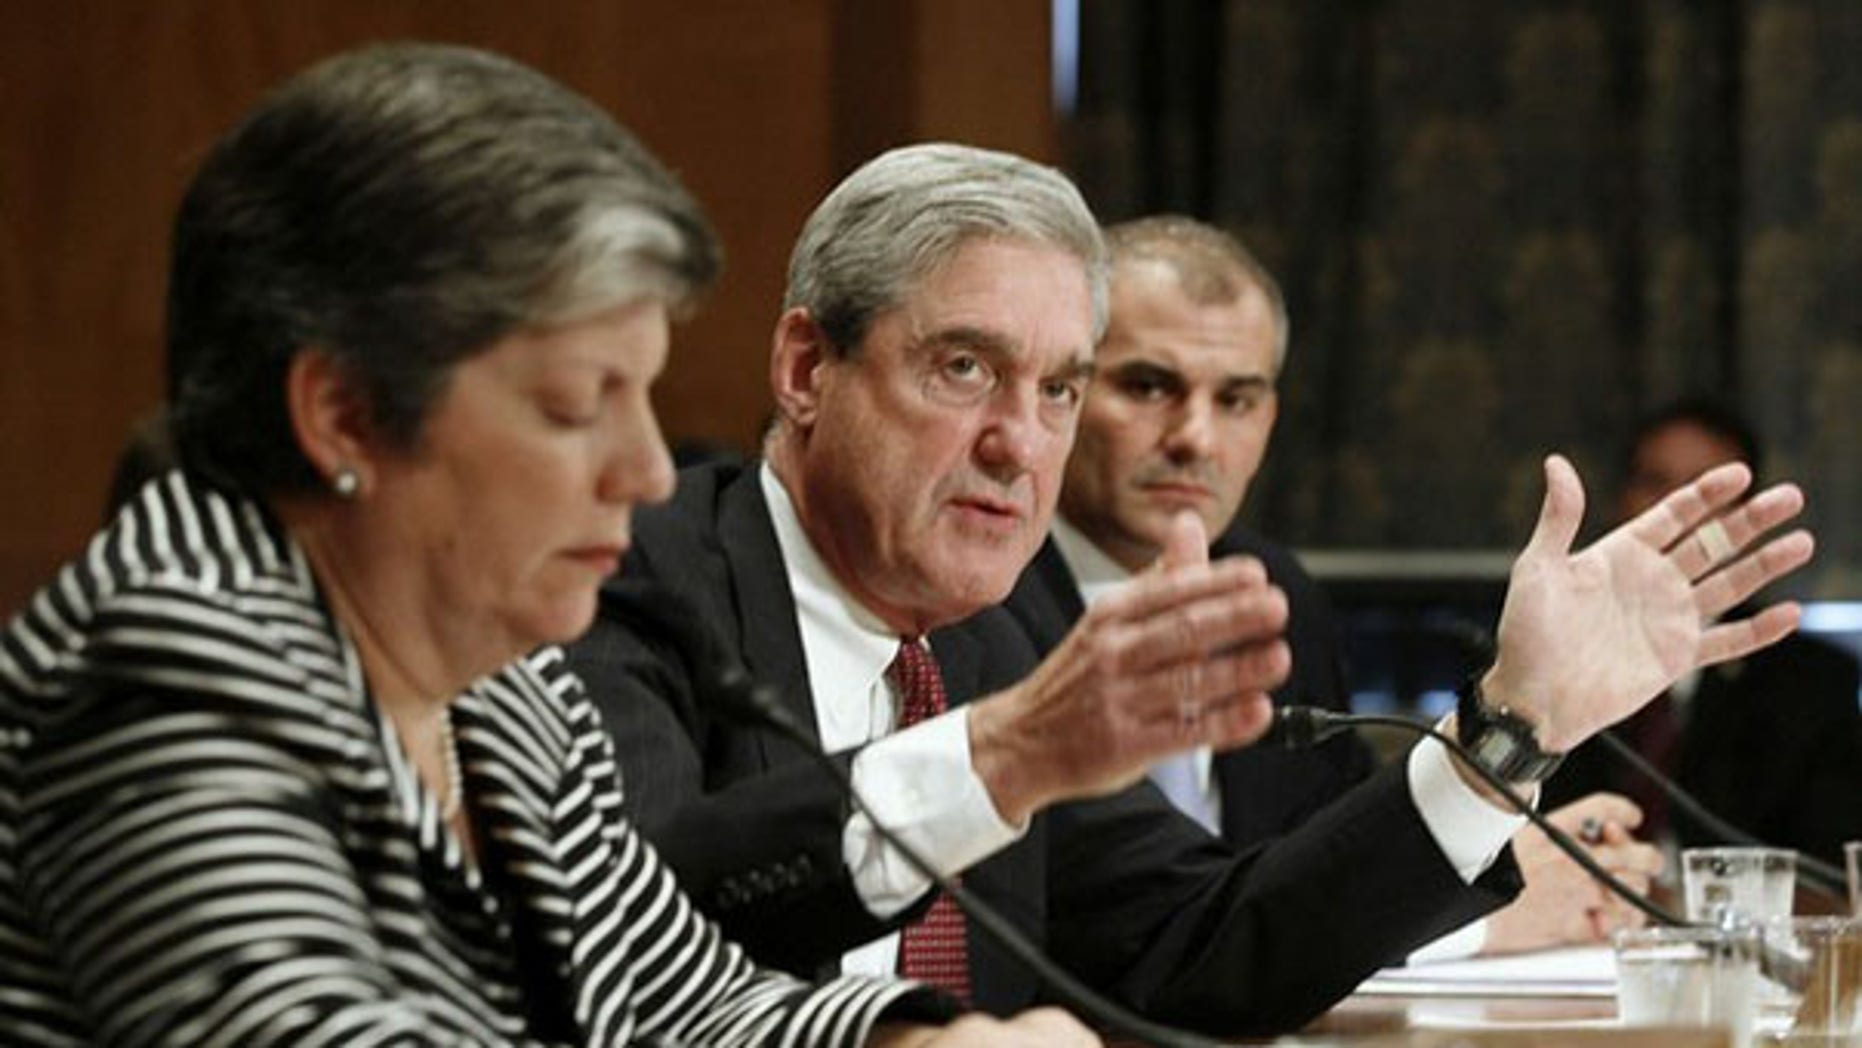 FBI Director Robert Mueller testifies alongside Homeland Security Secretary Janet Napolitano on Capitol Hill in Washington Sept. 30. (Reuters Photo)